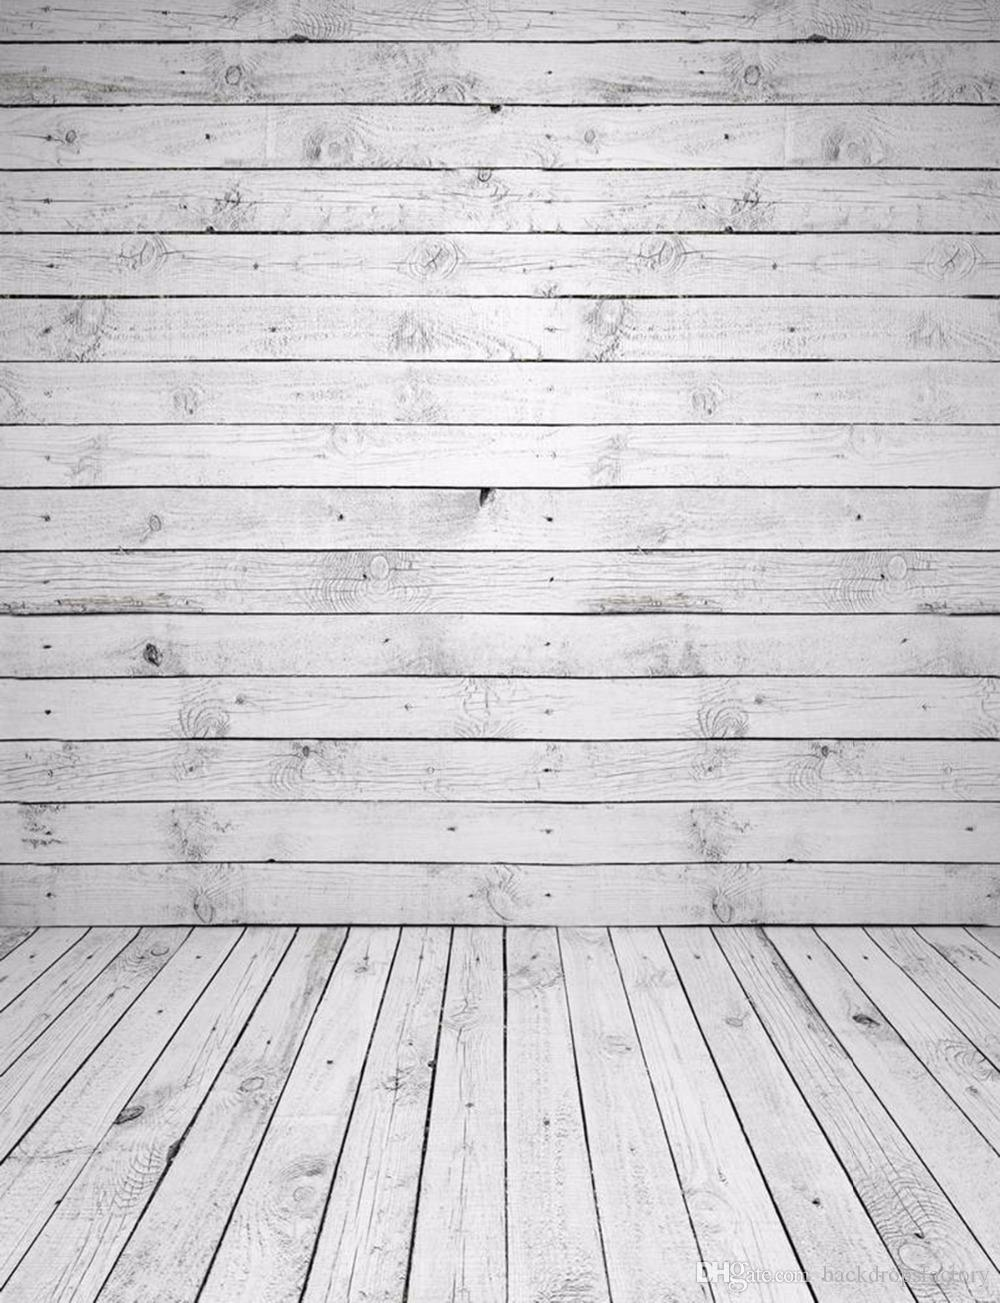 white wood floor background. Vinyl Photography Backdrop Wood Wall Floor Vintage White Wooden Planks Kids Children Newborn Baby Photo Props Studio Booth Backgrounds Backdrops Background T